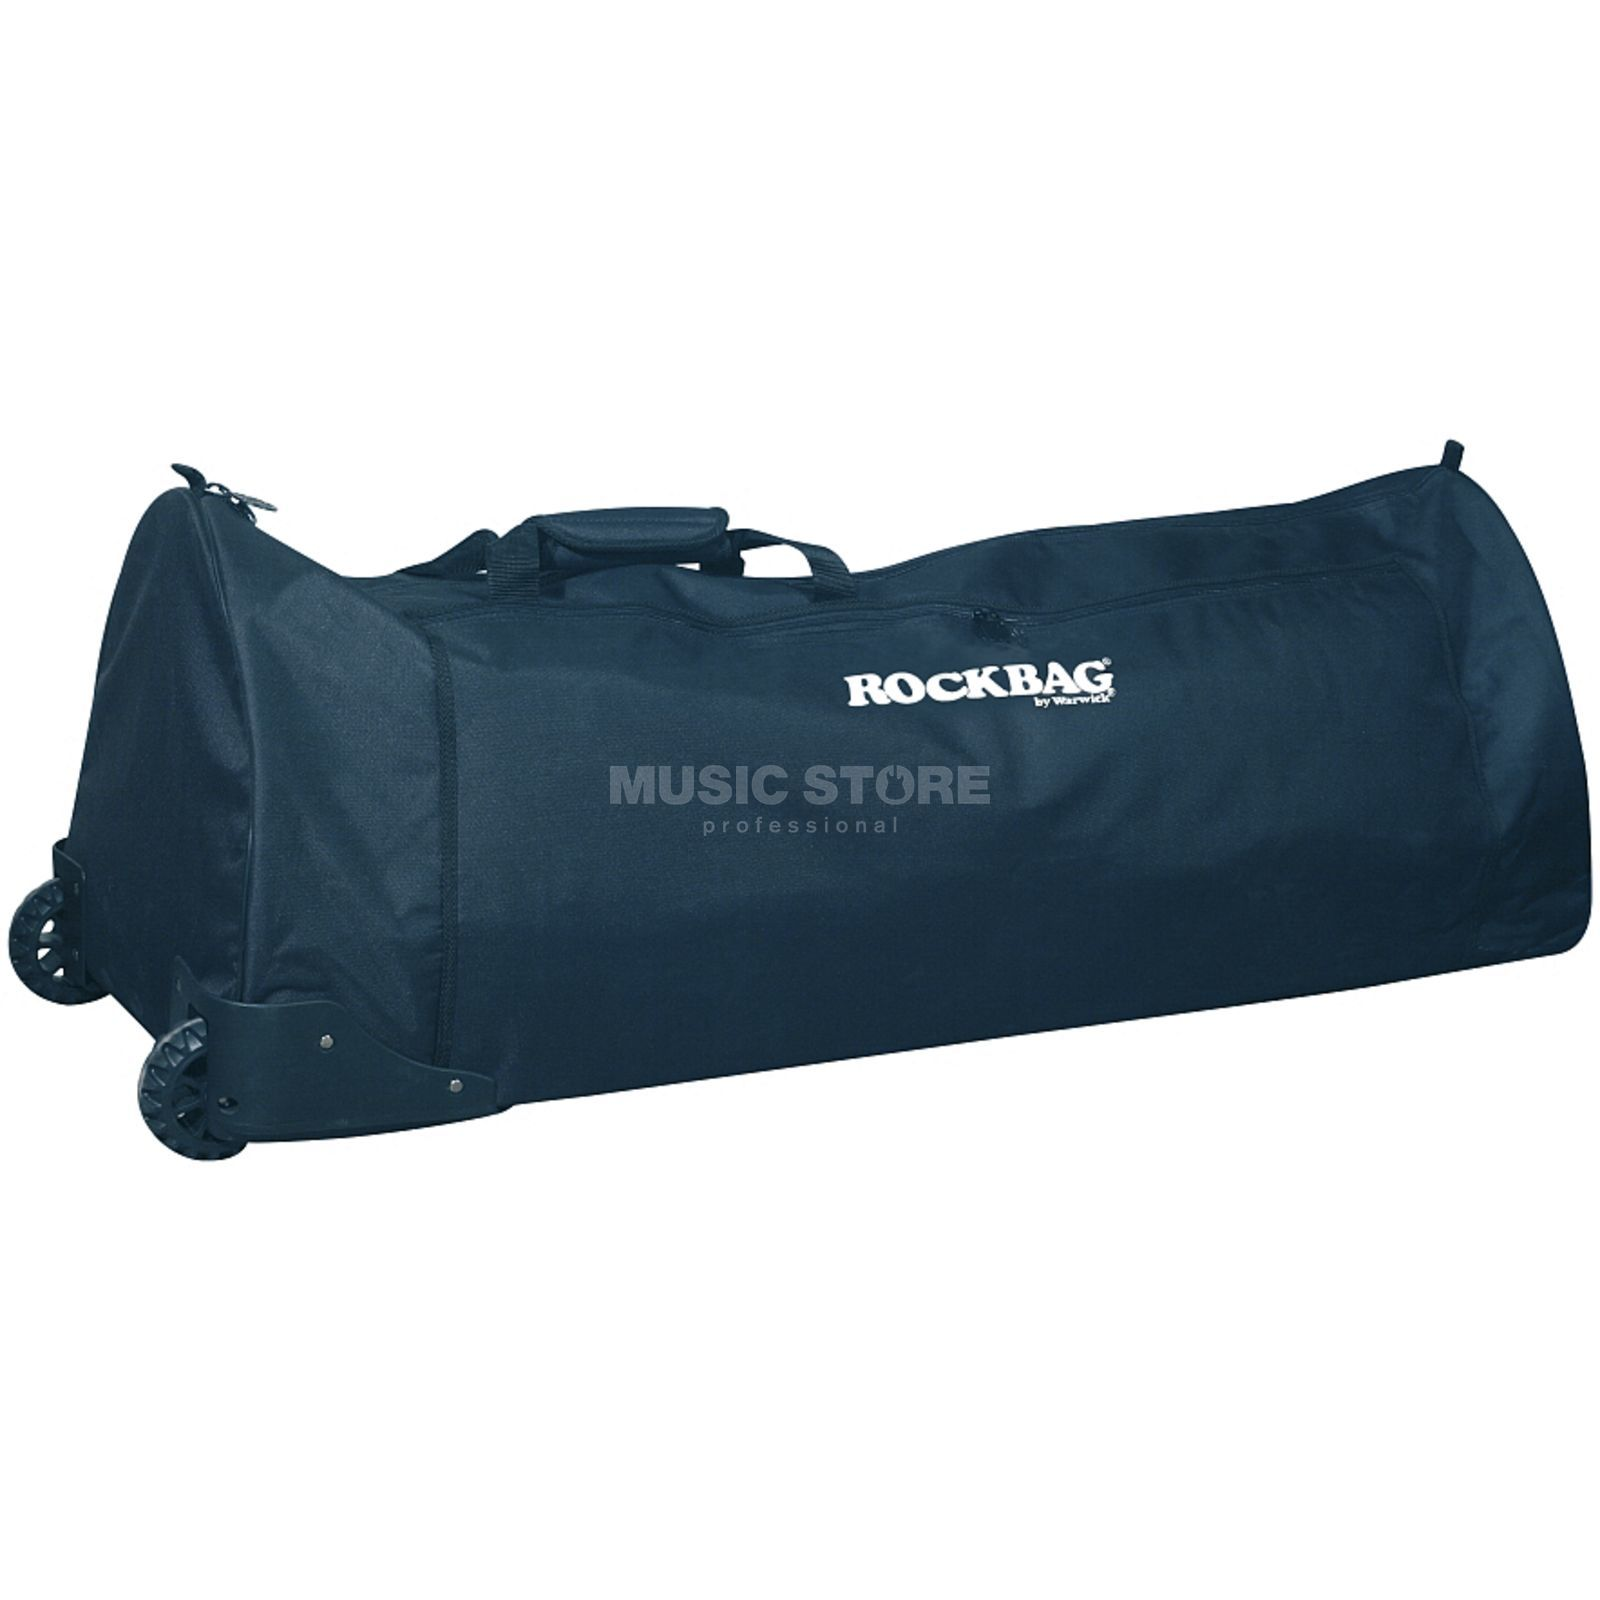 "Rockbag Hardware Bag RB22503 B/1, 44""x16""x14"", w/wheels Produktbild"